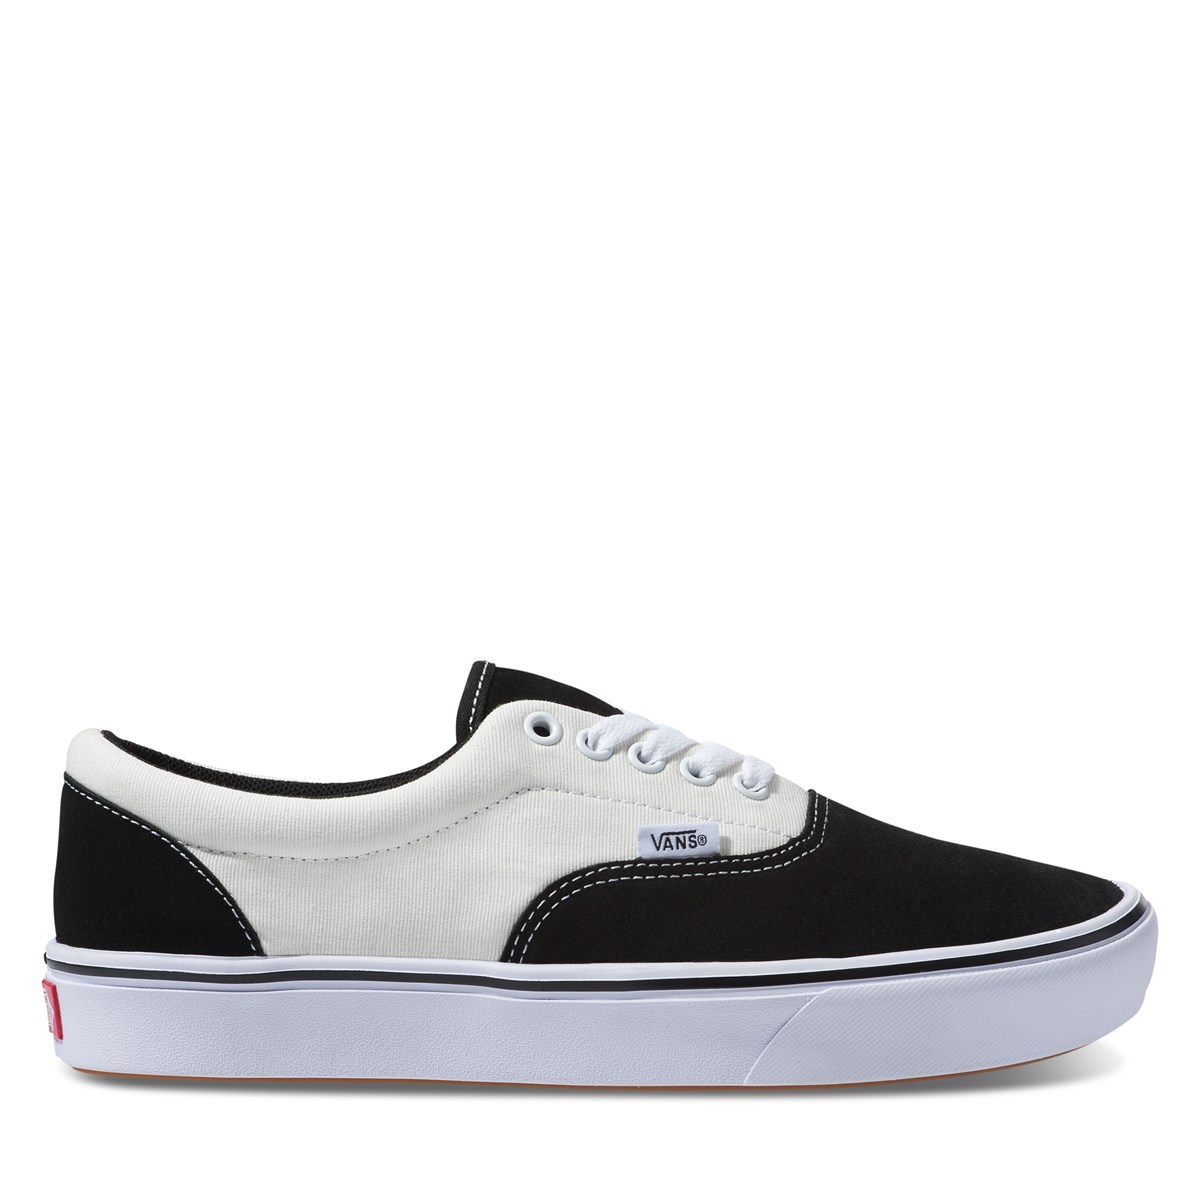 Men's Era ComfyCush  Sneaker in Black/White